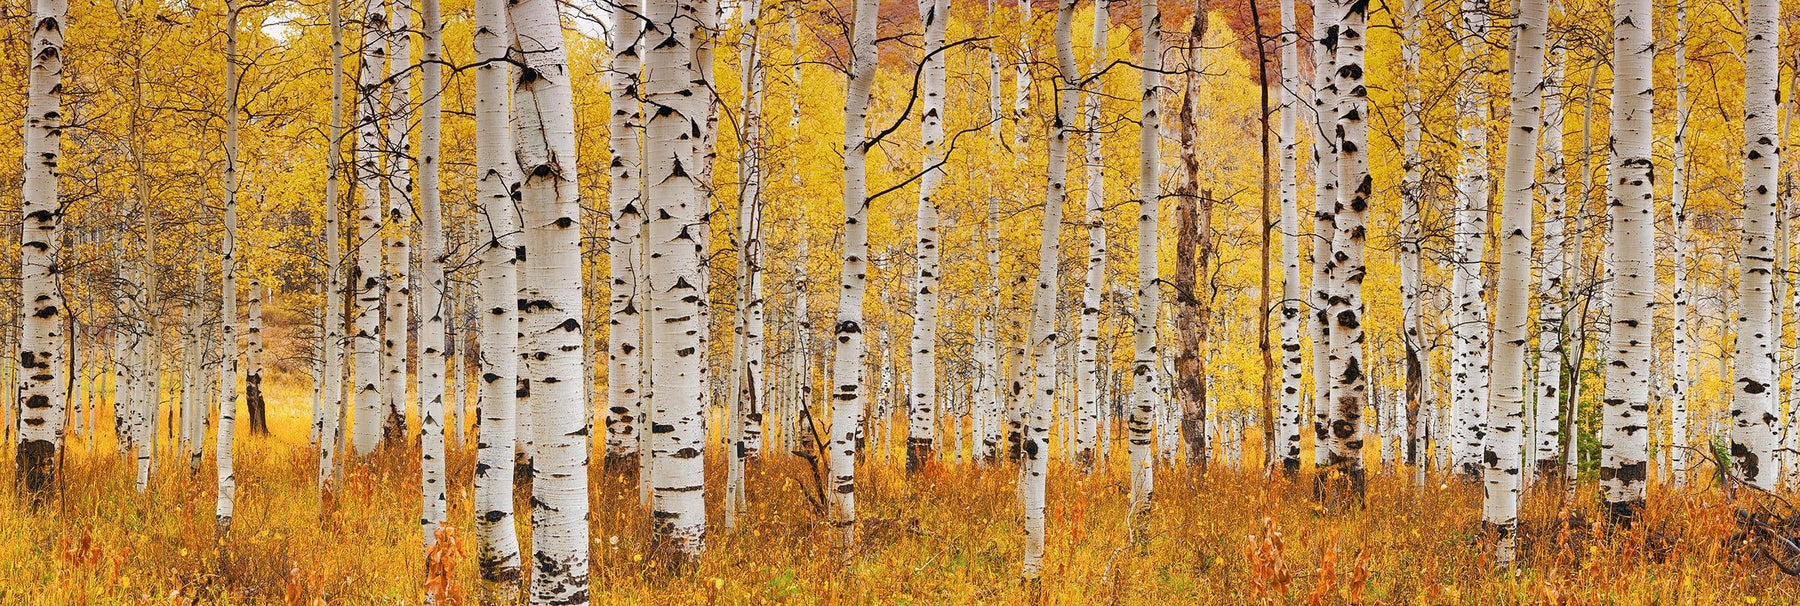 Aspen Glow. A Limited Edition Fine Art Print from Peter Lik. – LIK ...